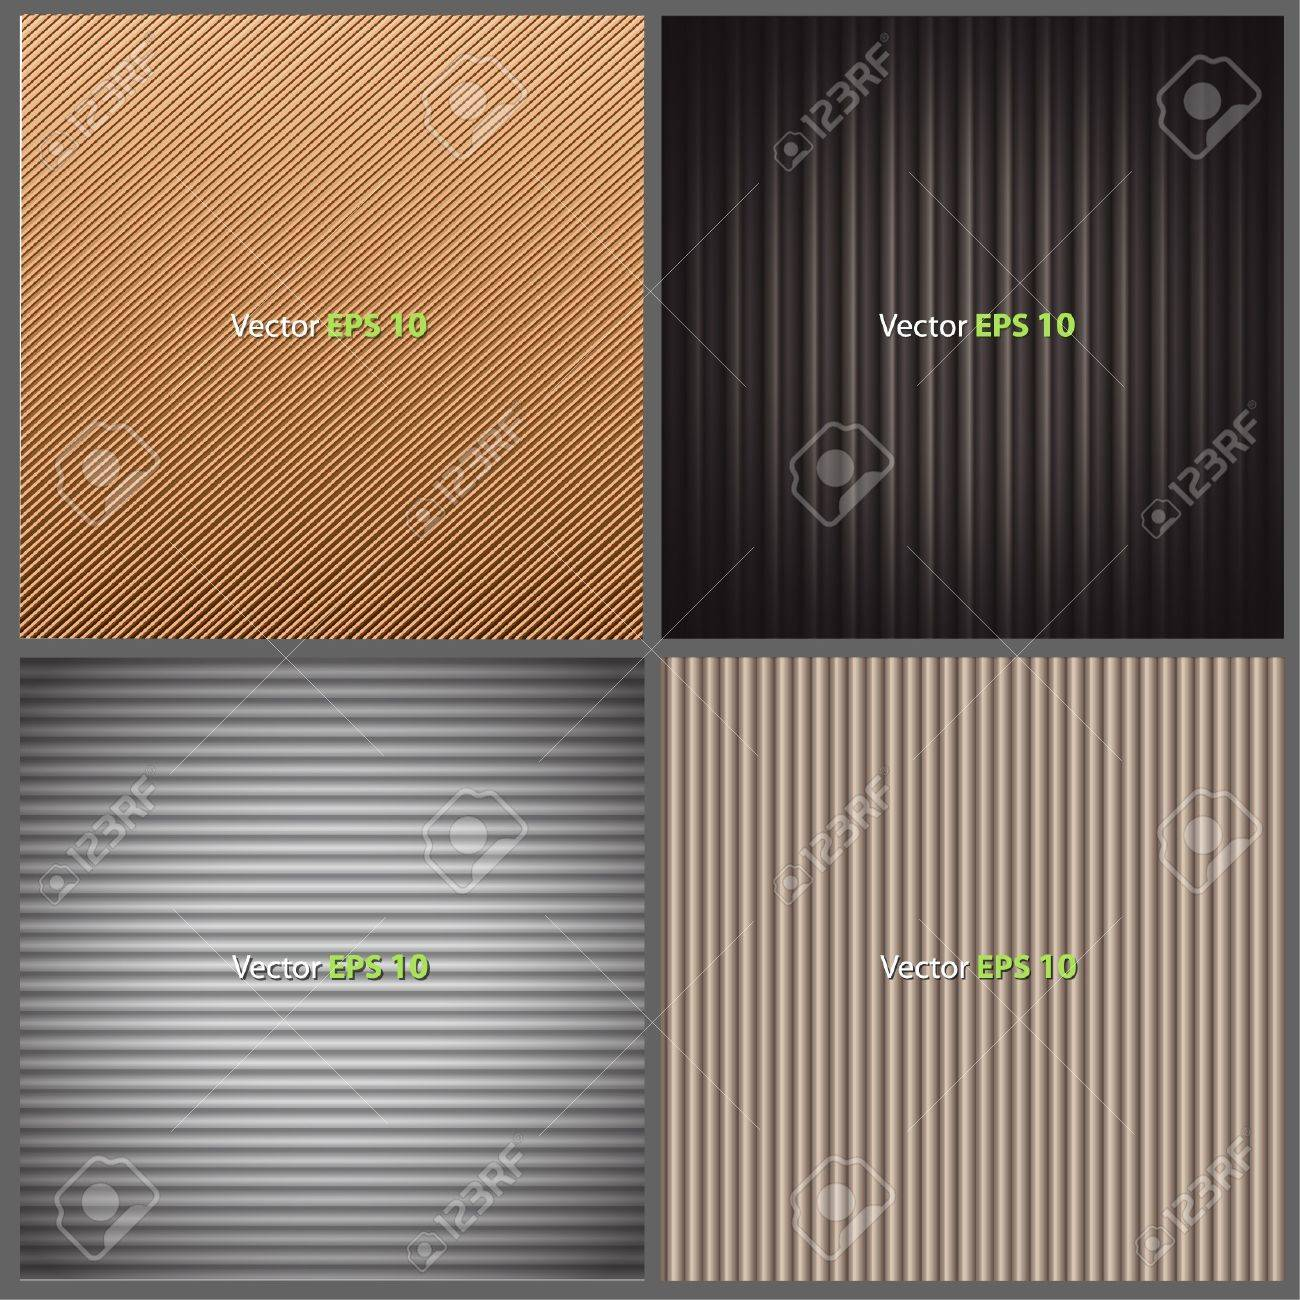 Texture brown leather, brown corrugated cardboard texture, and grey plastic texture  Collection images of vector background design Stock Vector - 17907846